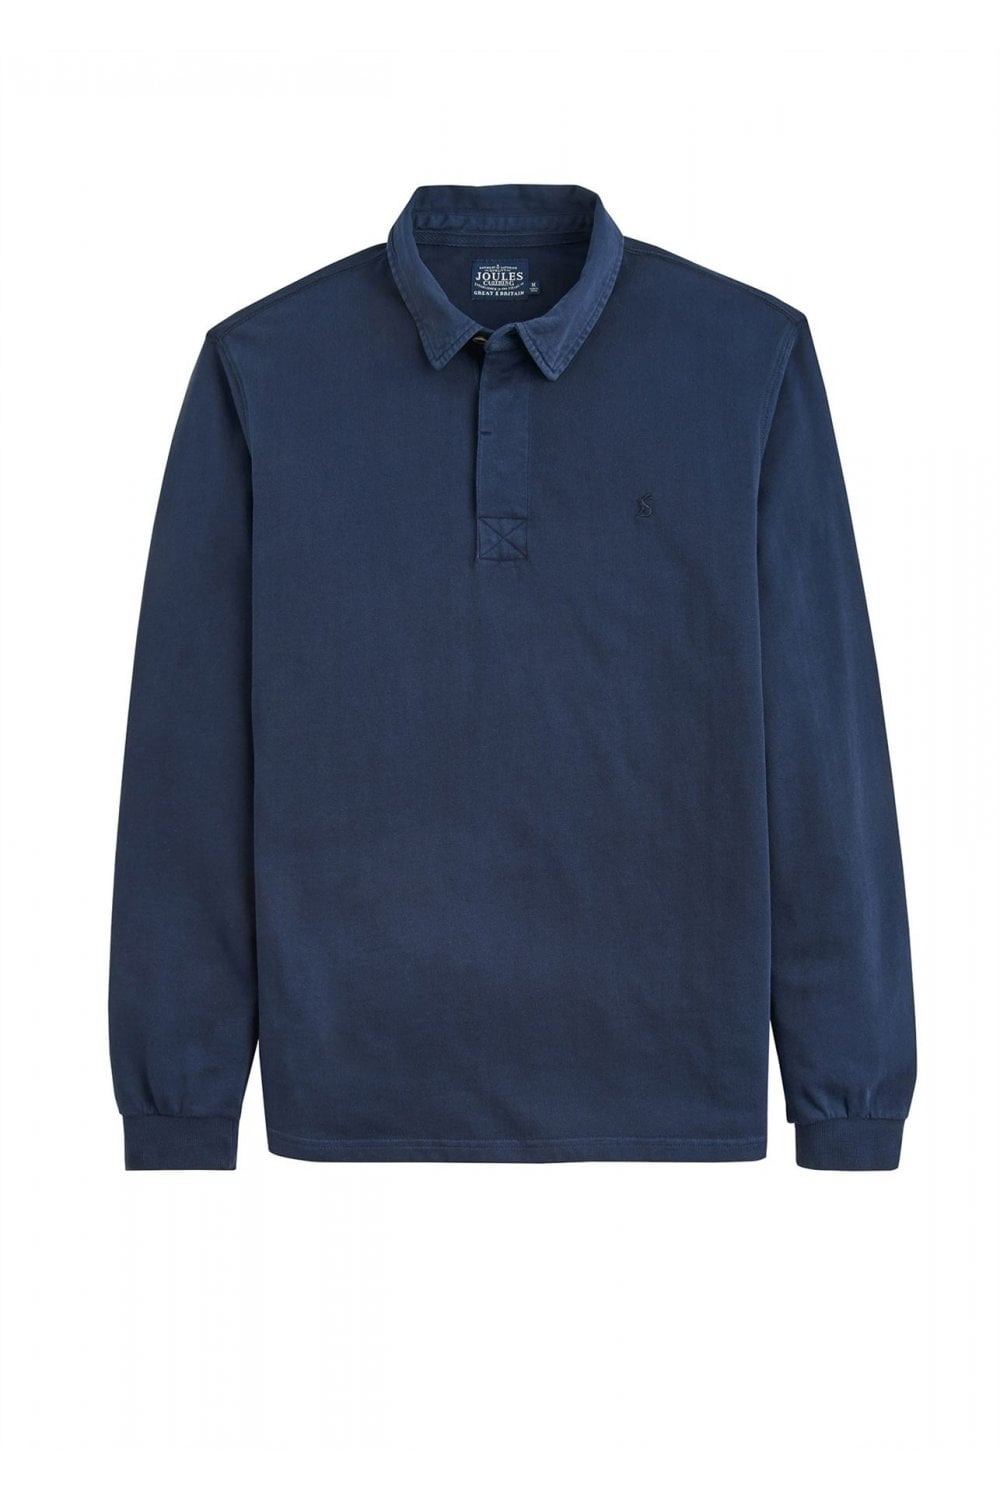 6ad7ad2cf72 Joules Mens Parkside Jersey Rugby Shirt - French Navy